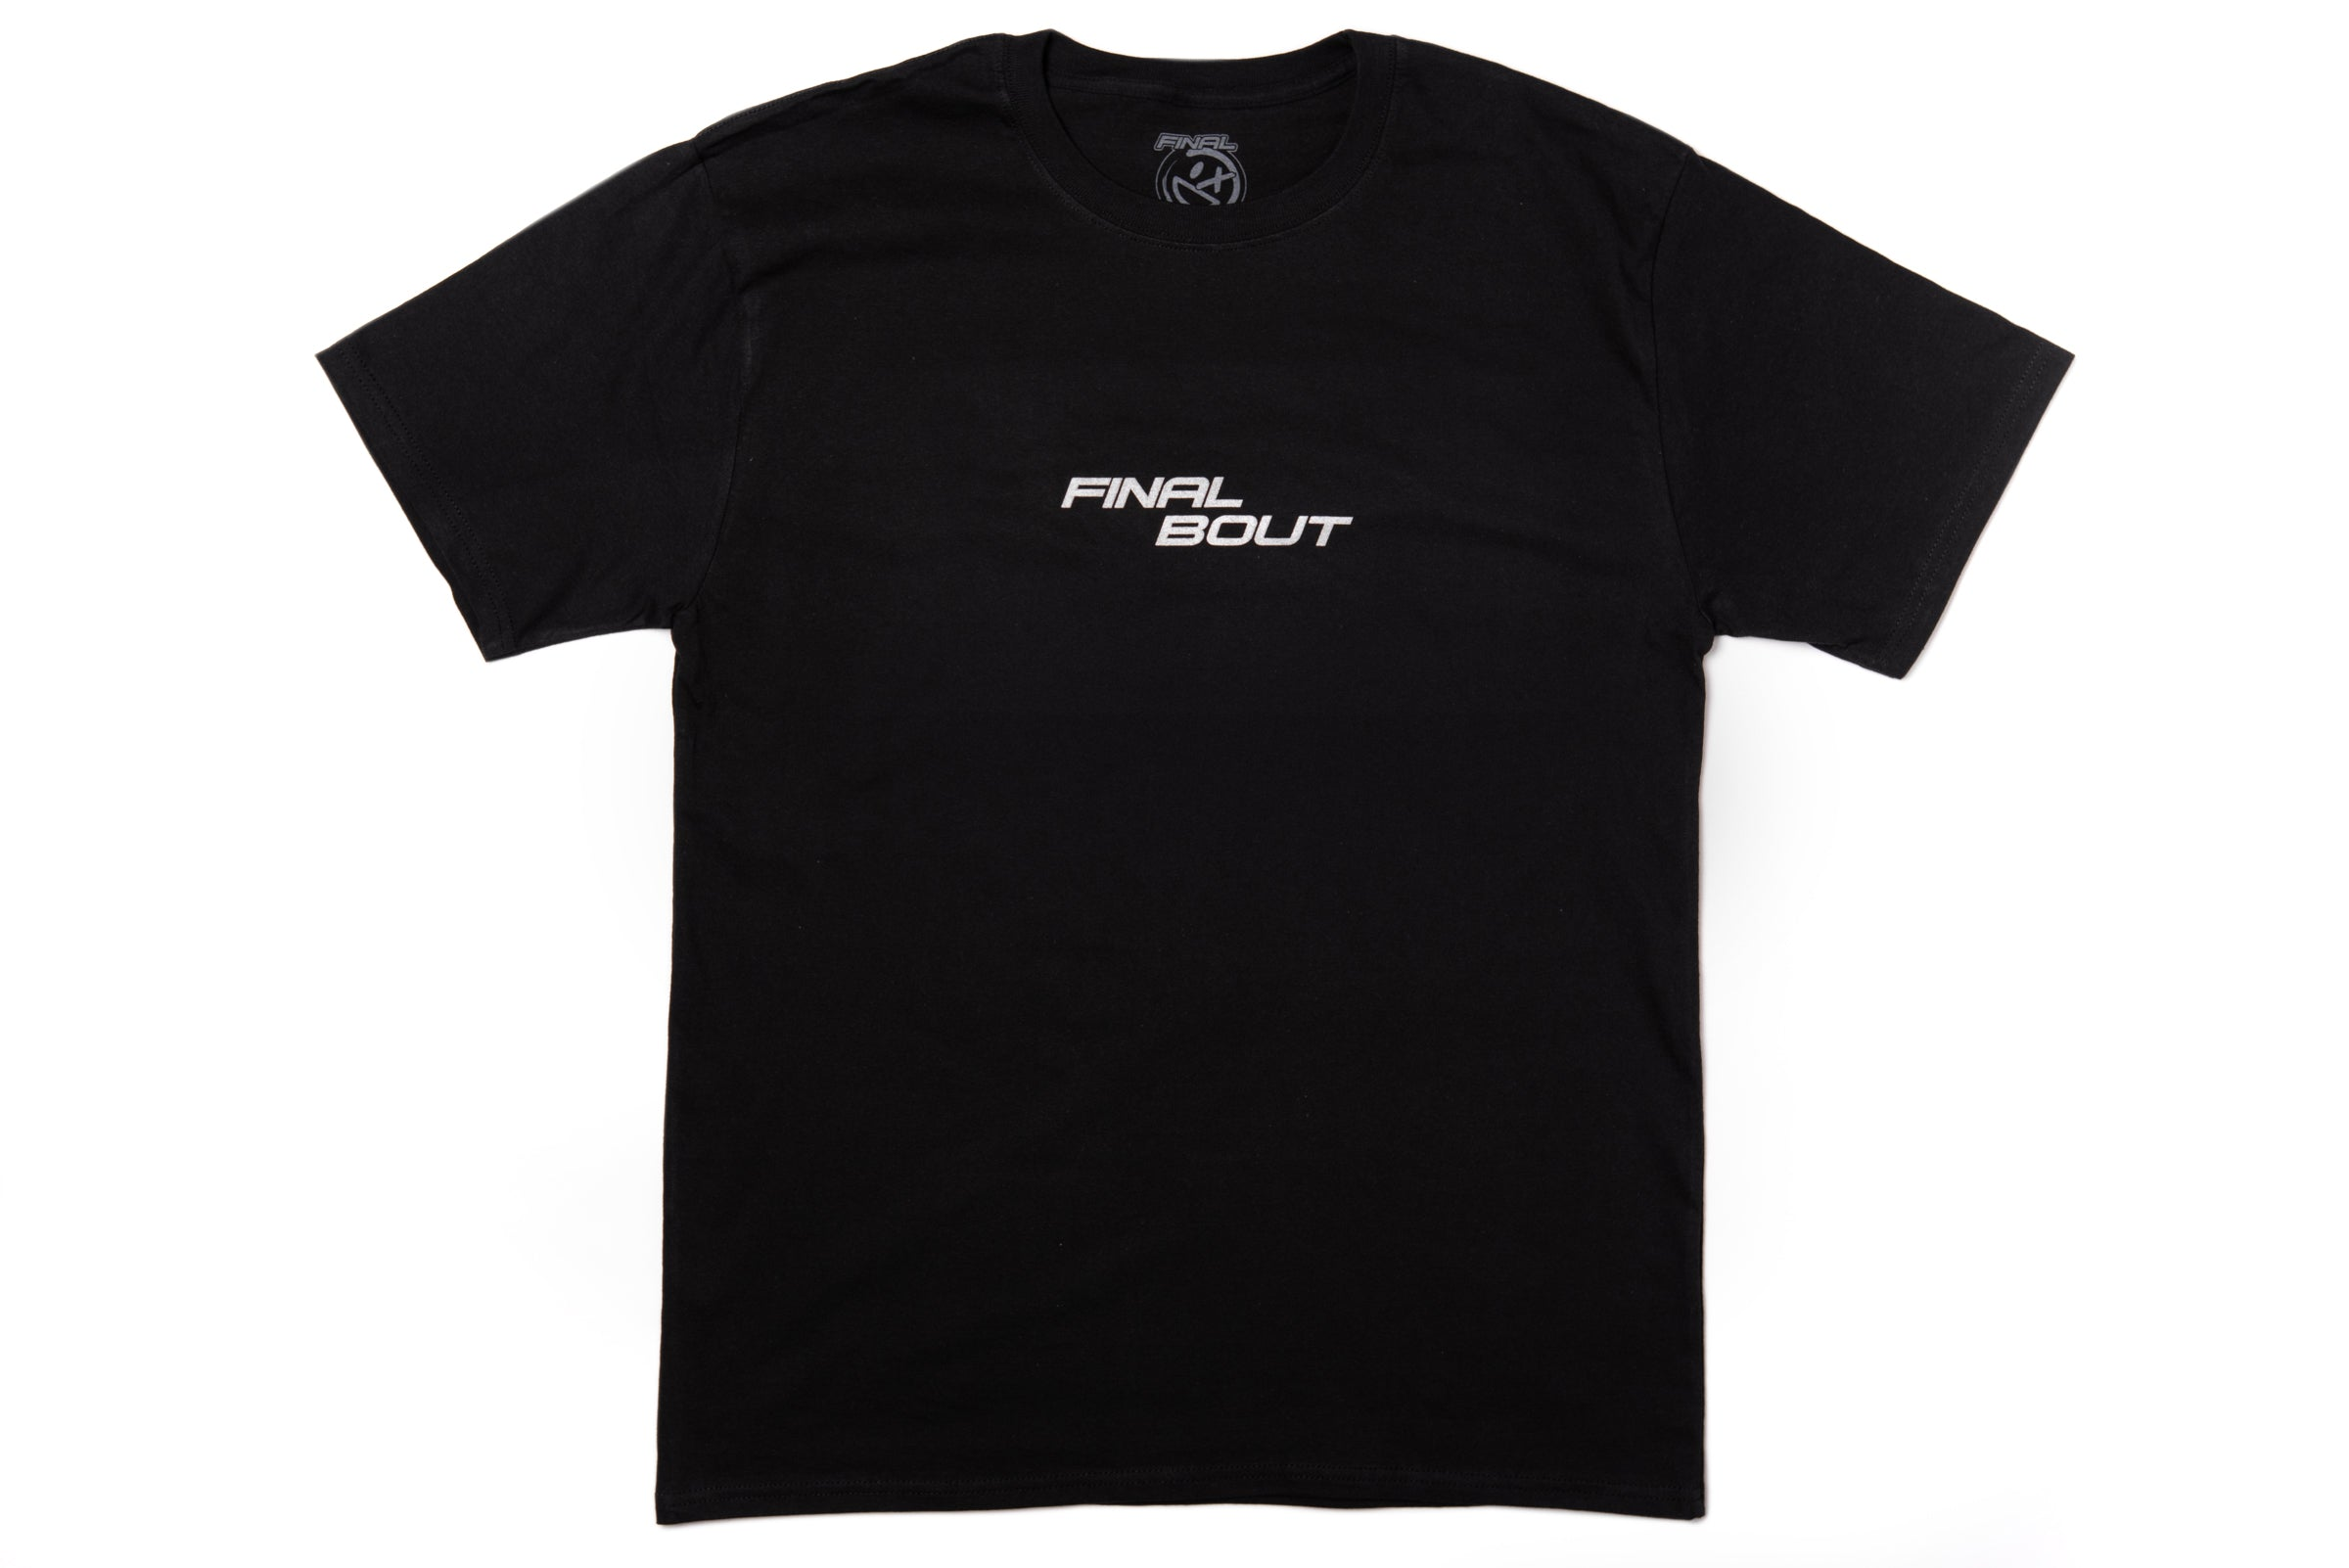 Final Bout Logo Tee [Black/Metallic Silver]